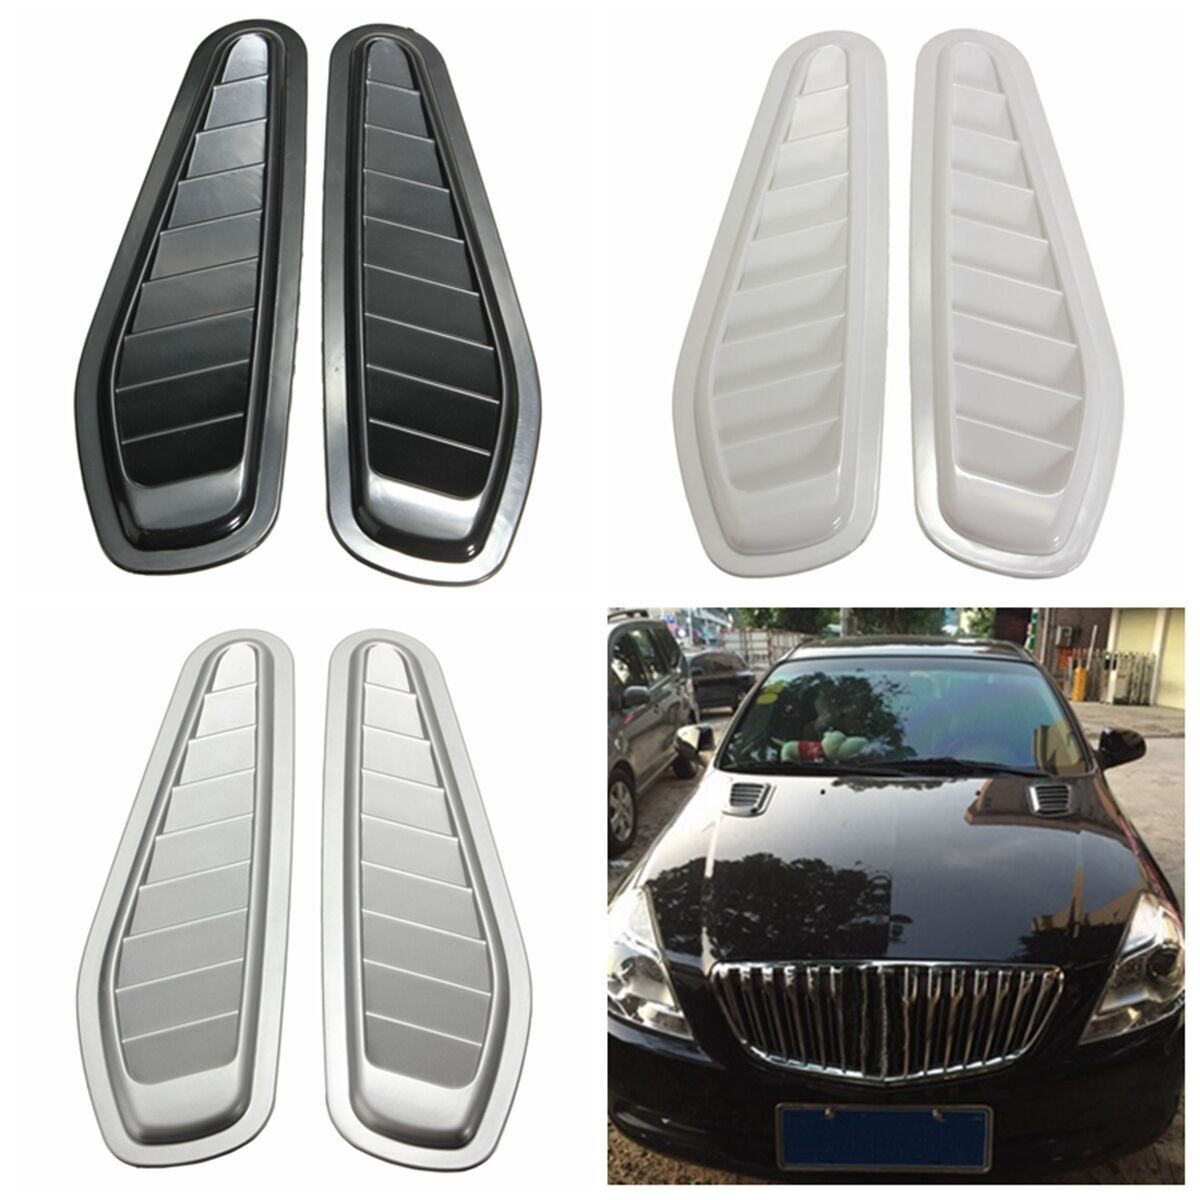 1 Pair Car Auto Decorative Air Flow Intake Scoop Turbo Bonnet Vent Cover Hood For Fender Black /White /Grey Car Styling new 2x car decorative air flow intake scoop turbo bonnet vent cover hood for fender